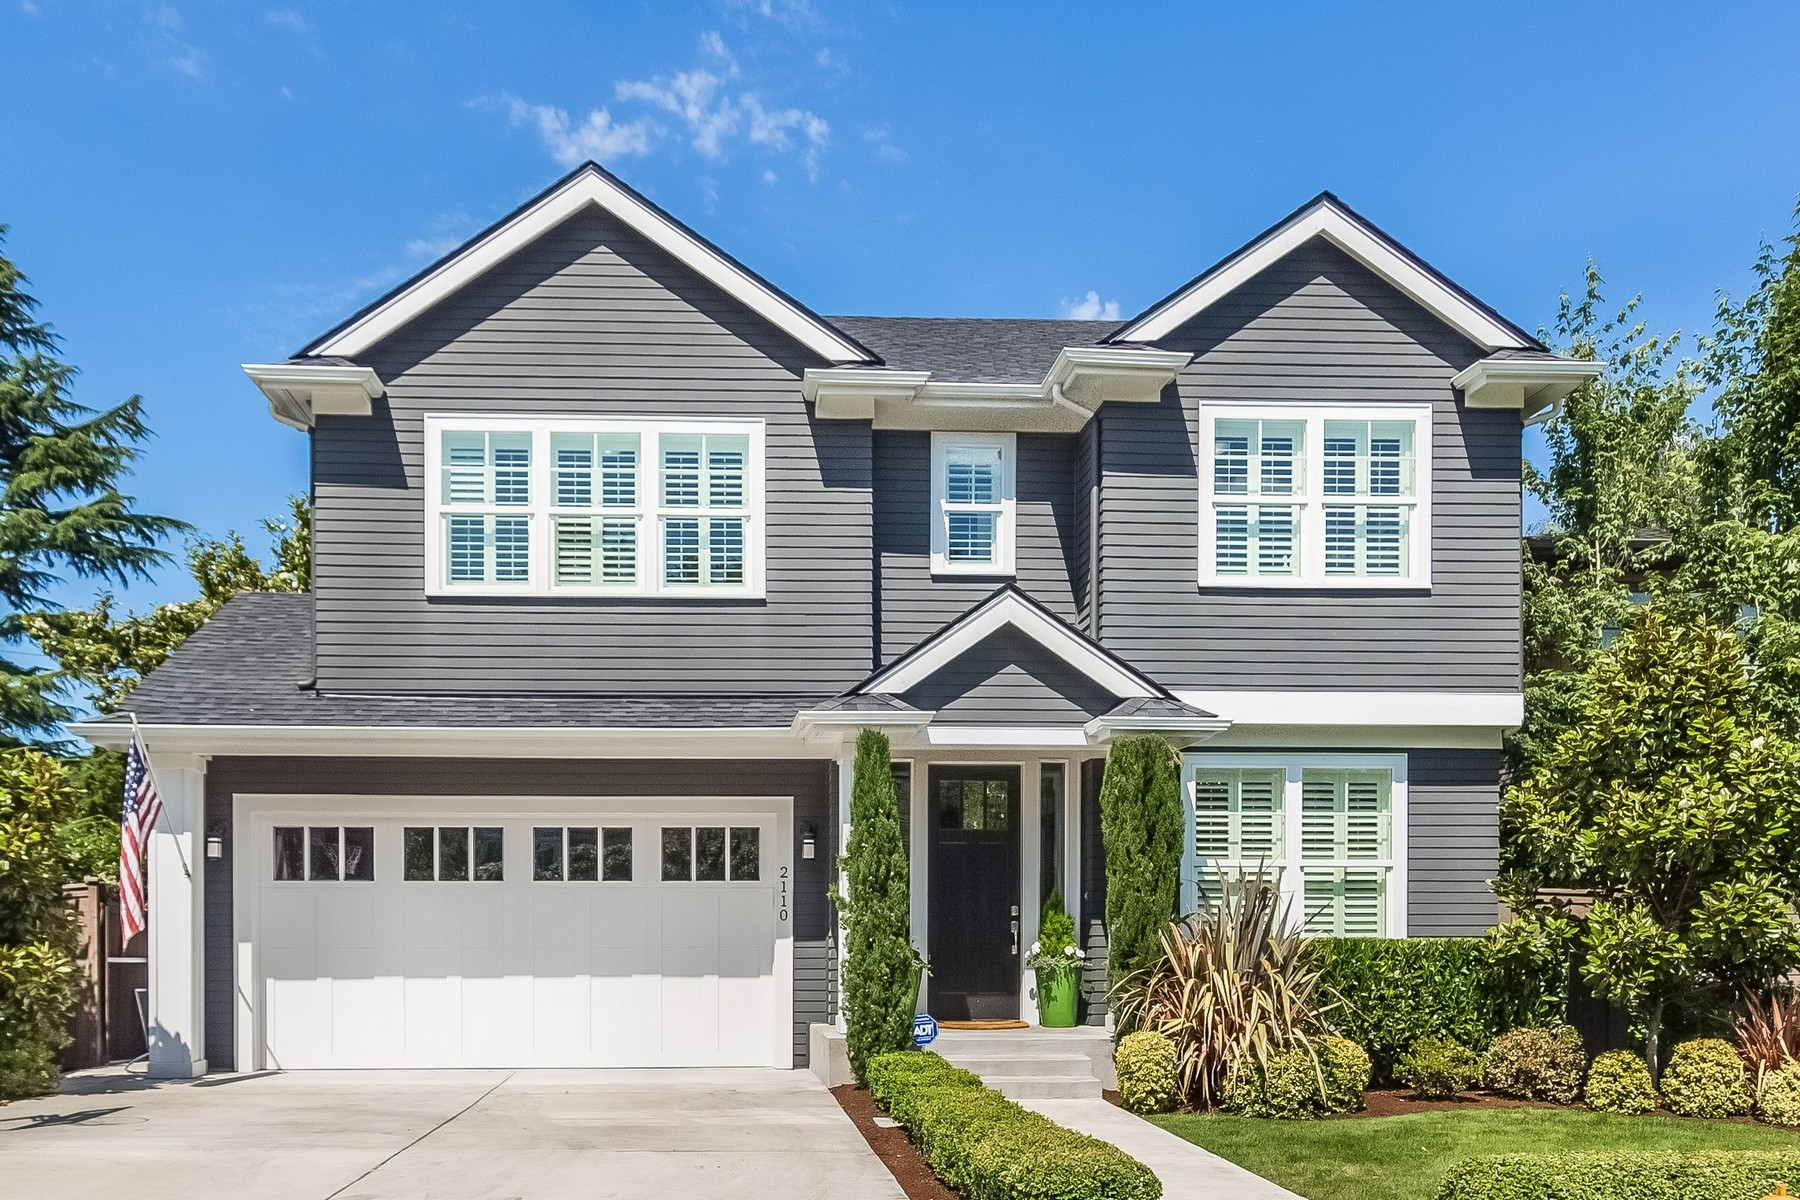 Single Family Home for Sale at Stunning New Build Craftsman 2110 38th Ave E Seattle, Washington 98112 United States